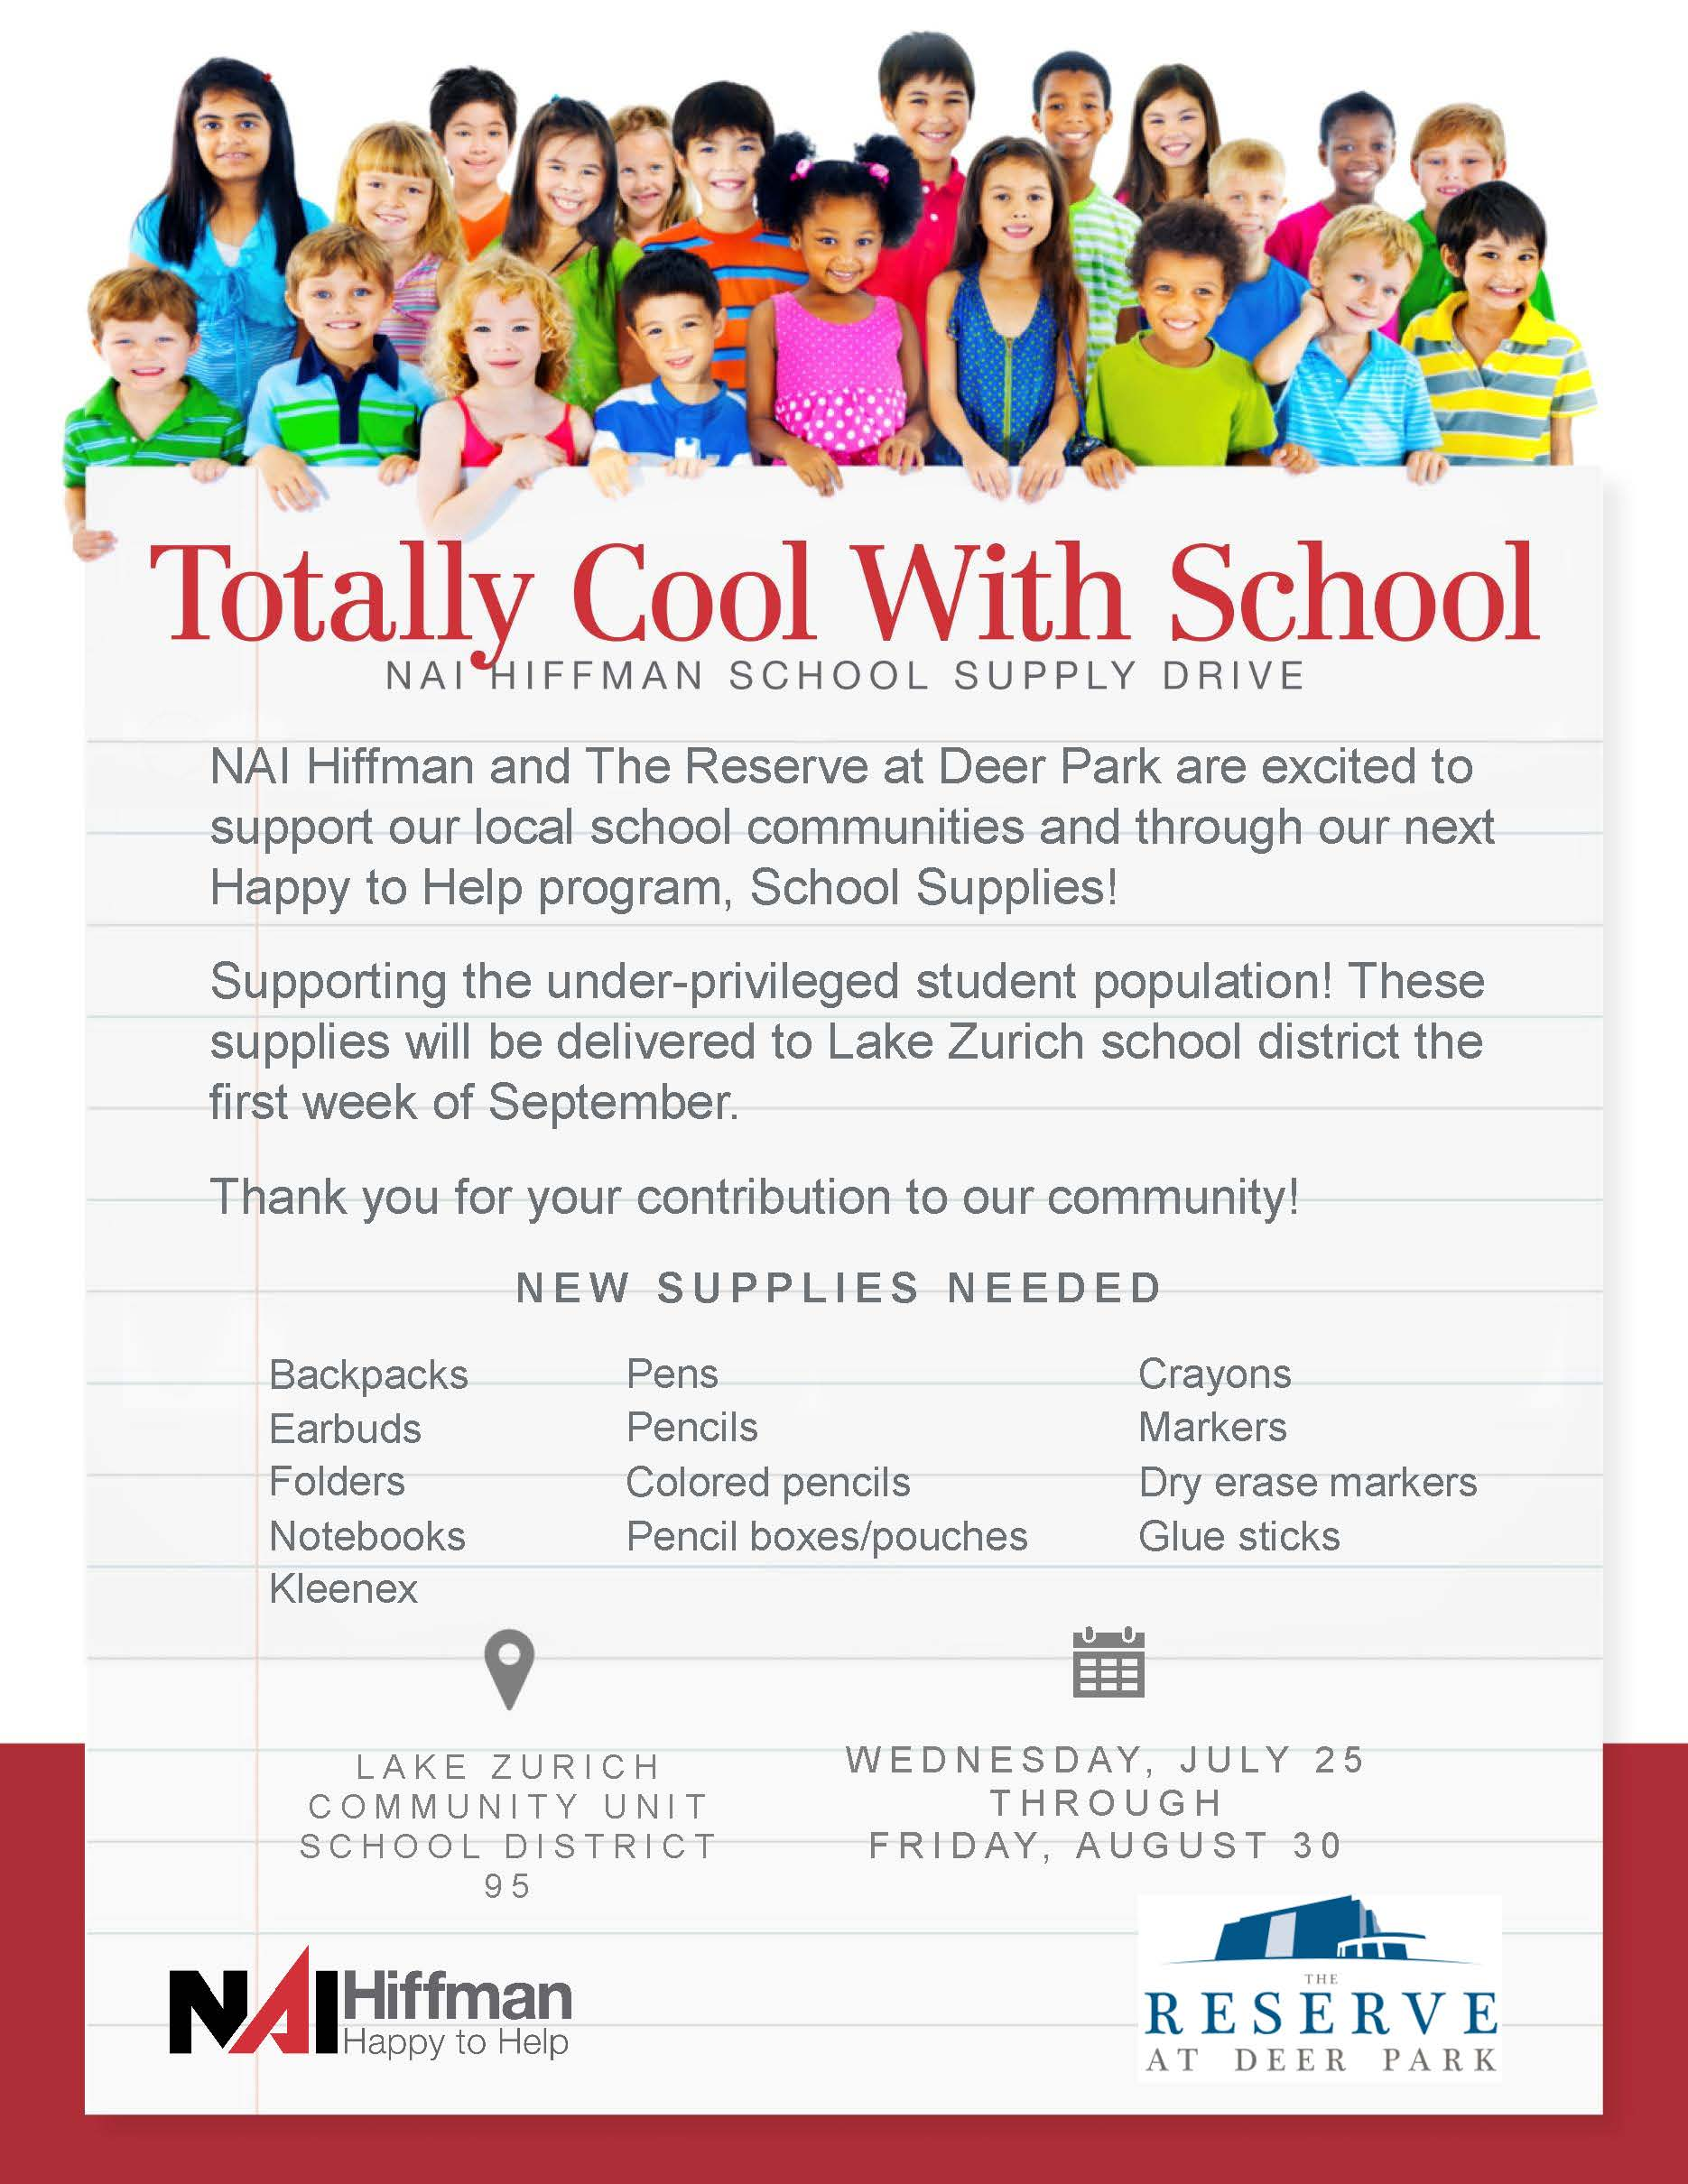 School Suppy Drive - The Reserve at Deer Park.jpg